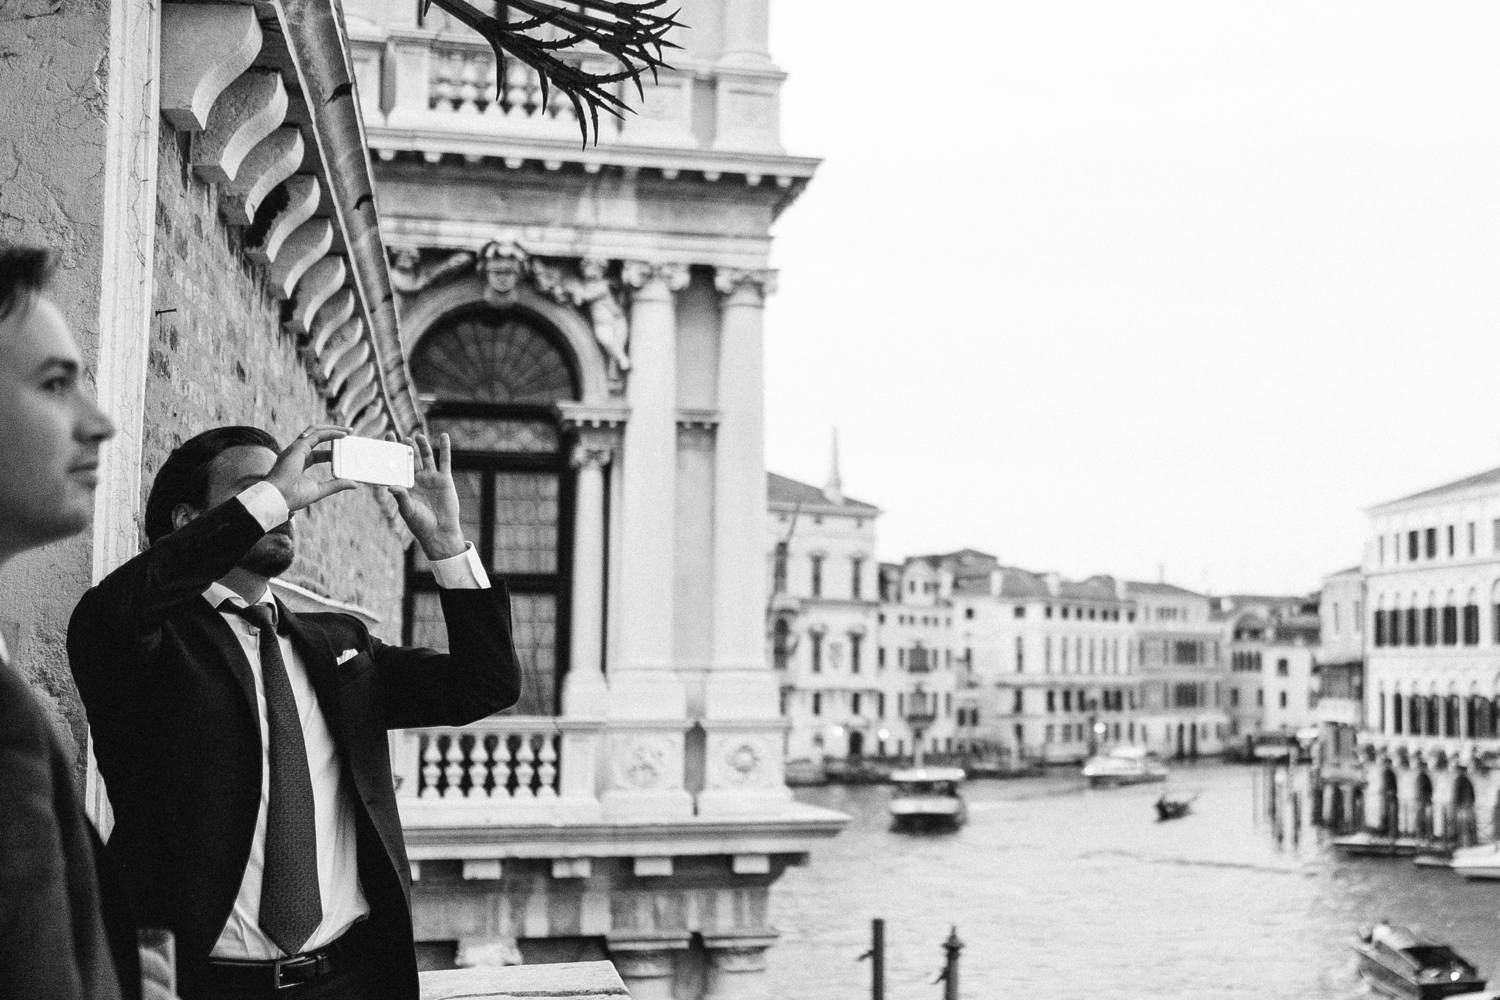 italian wedding in venice by david mcclelland